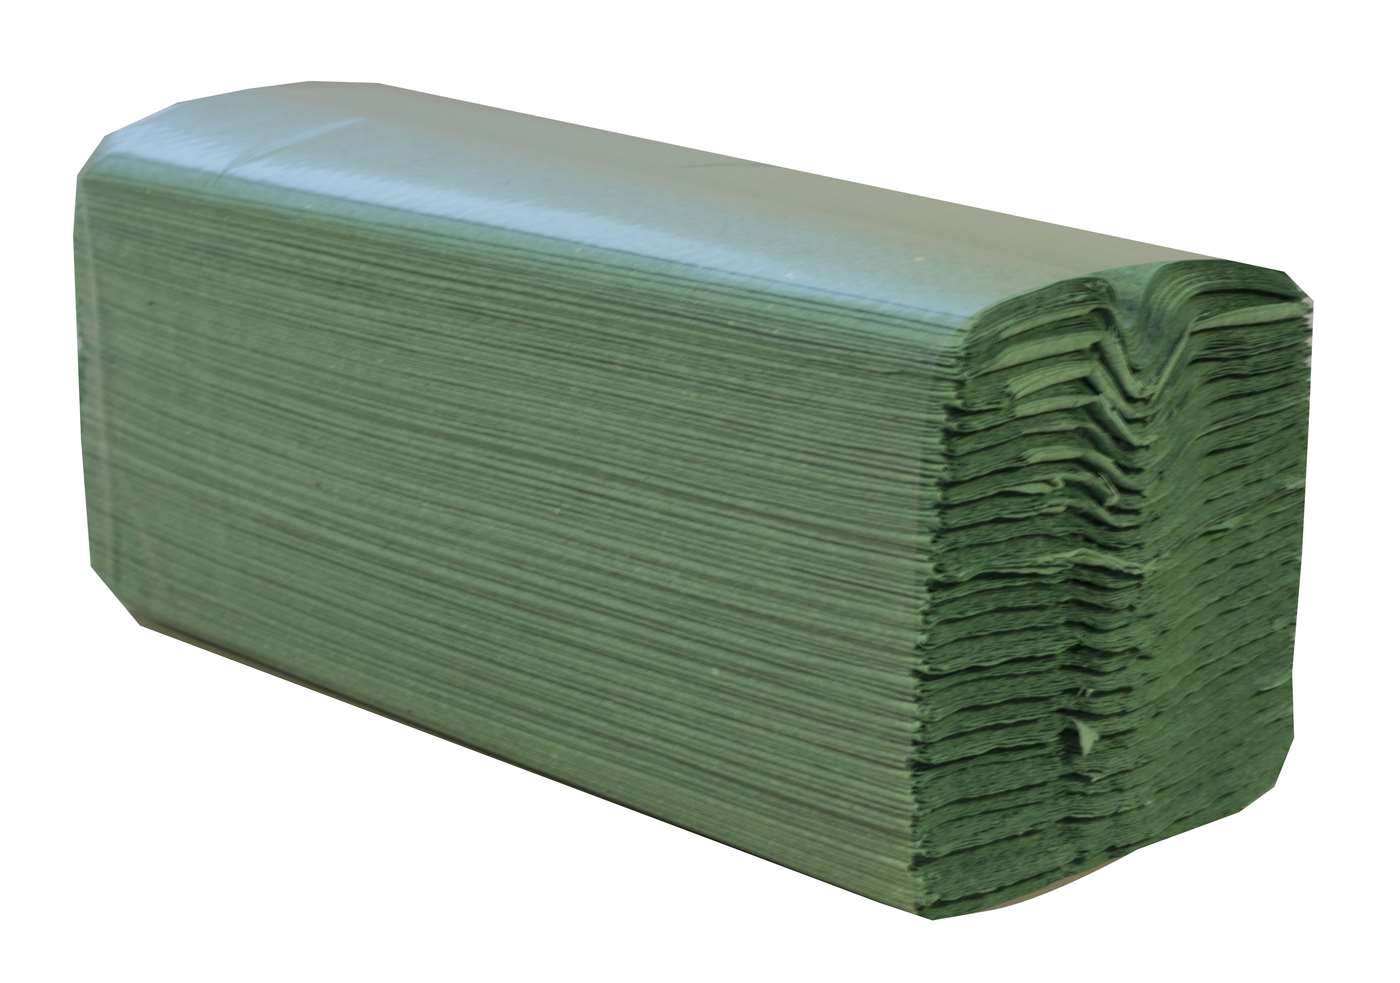 PRO C-Fold 1ply Green Recycled Paper Towels